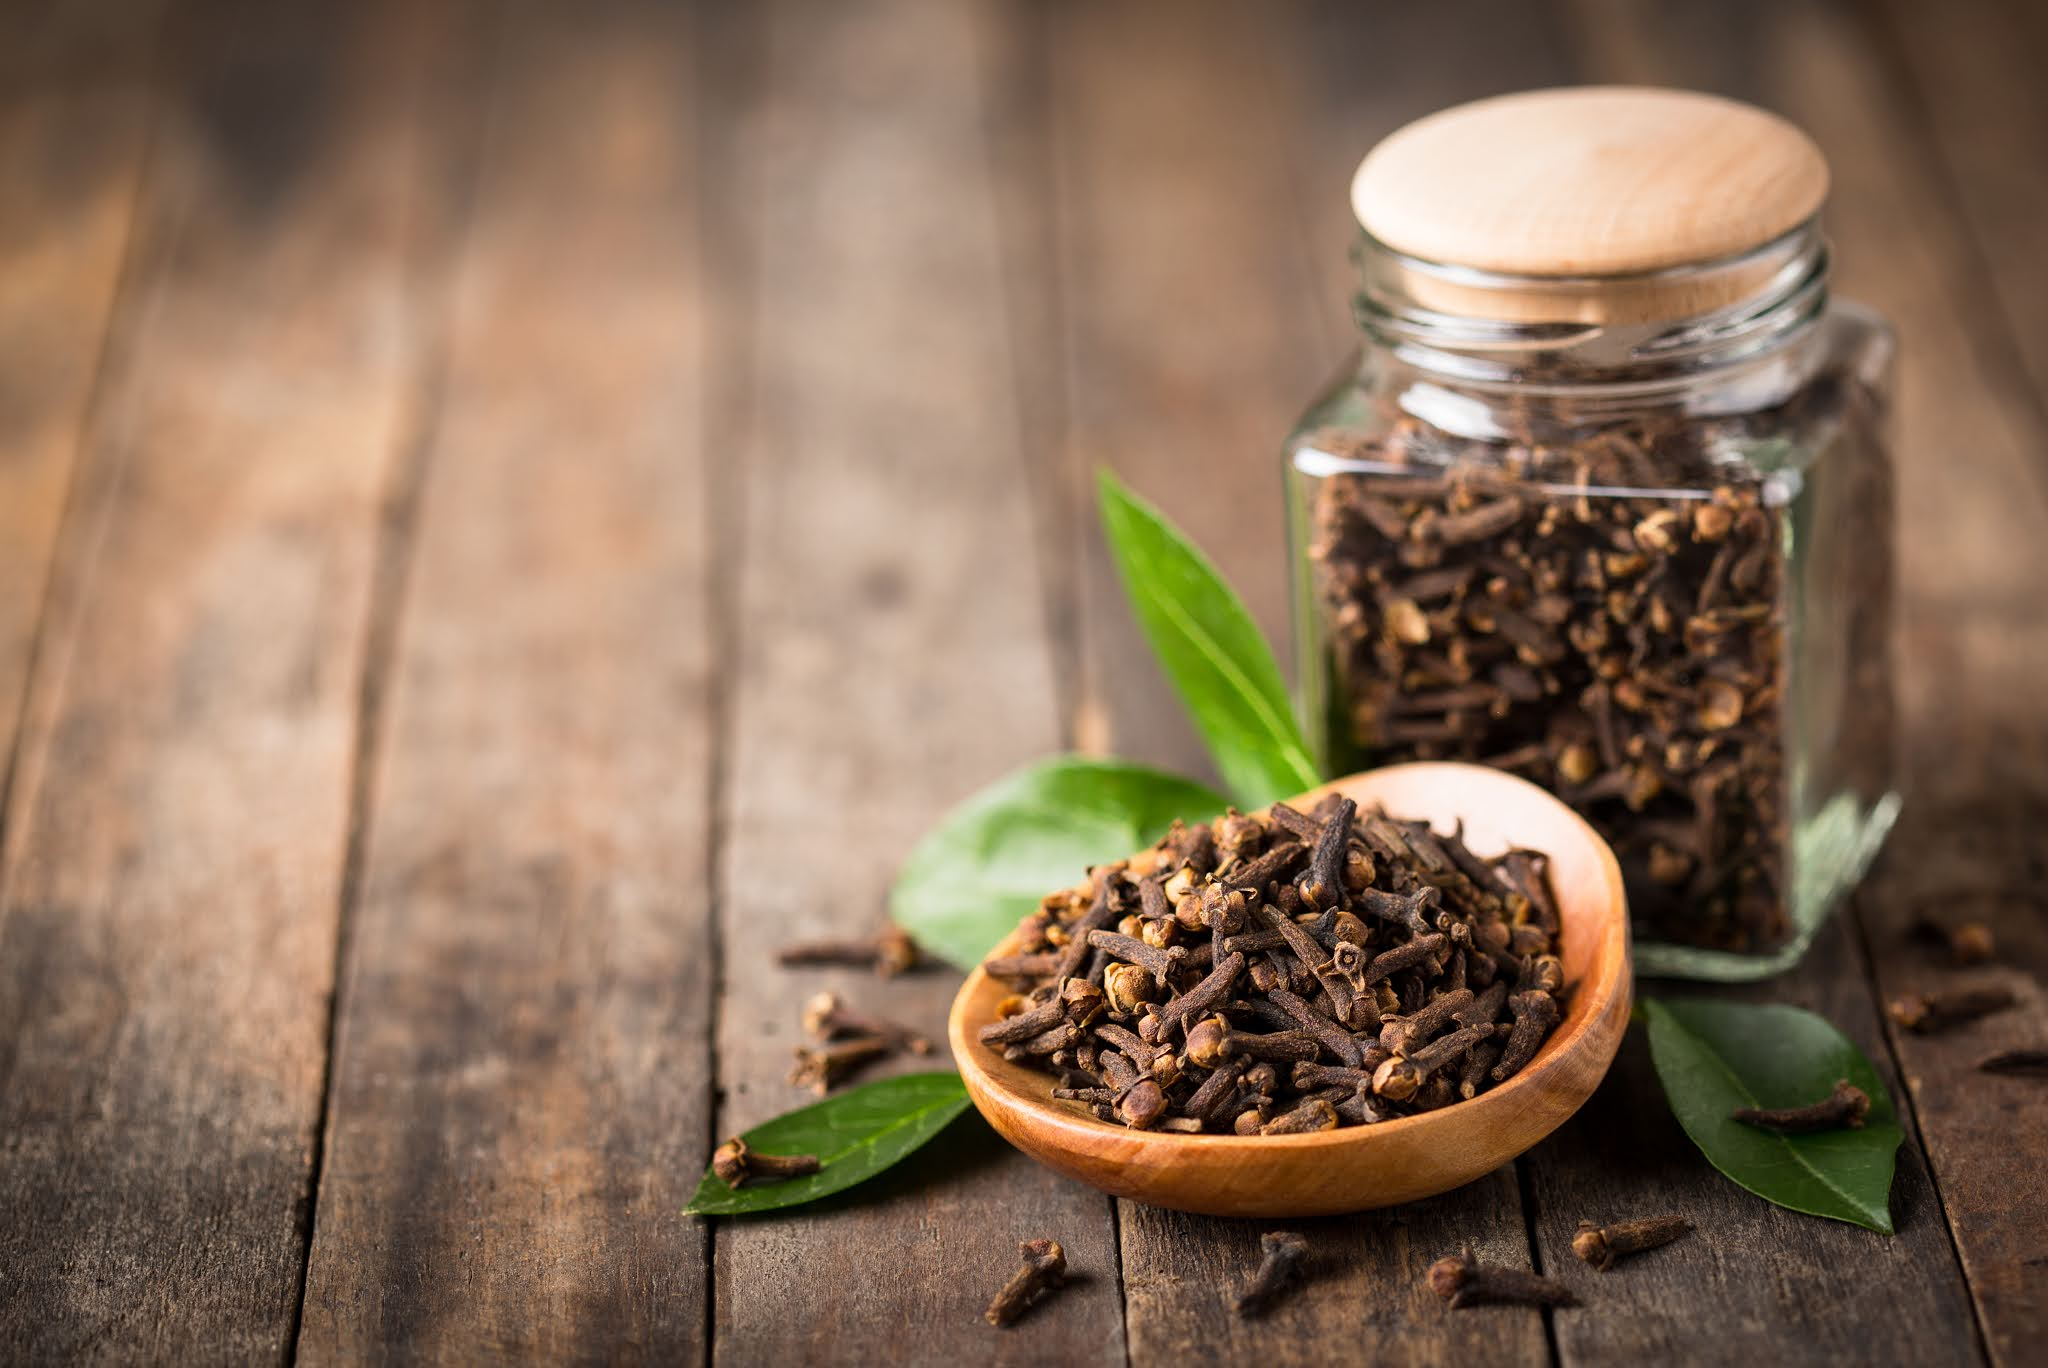 reduce acidity problem naturally at home by Cloves